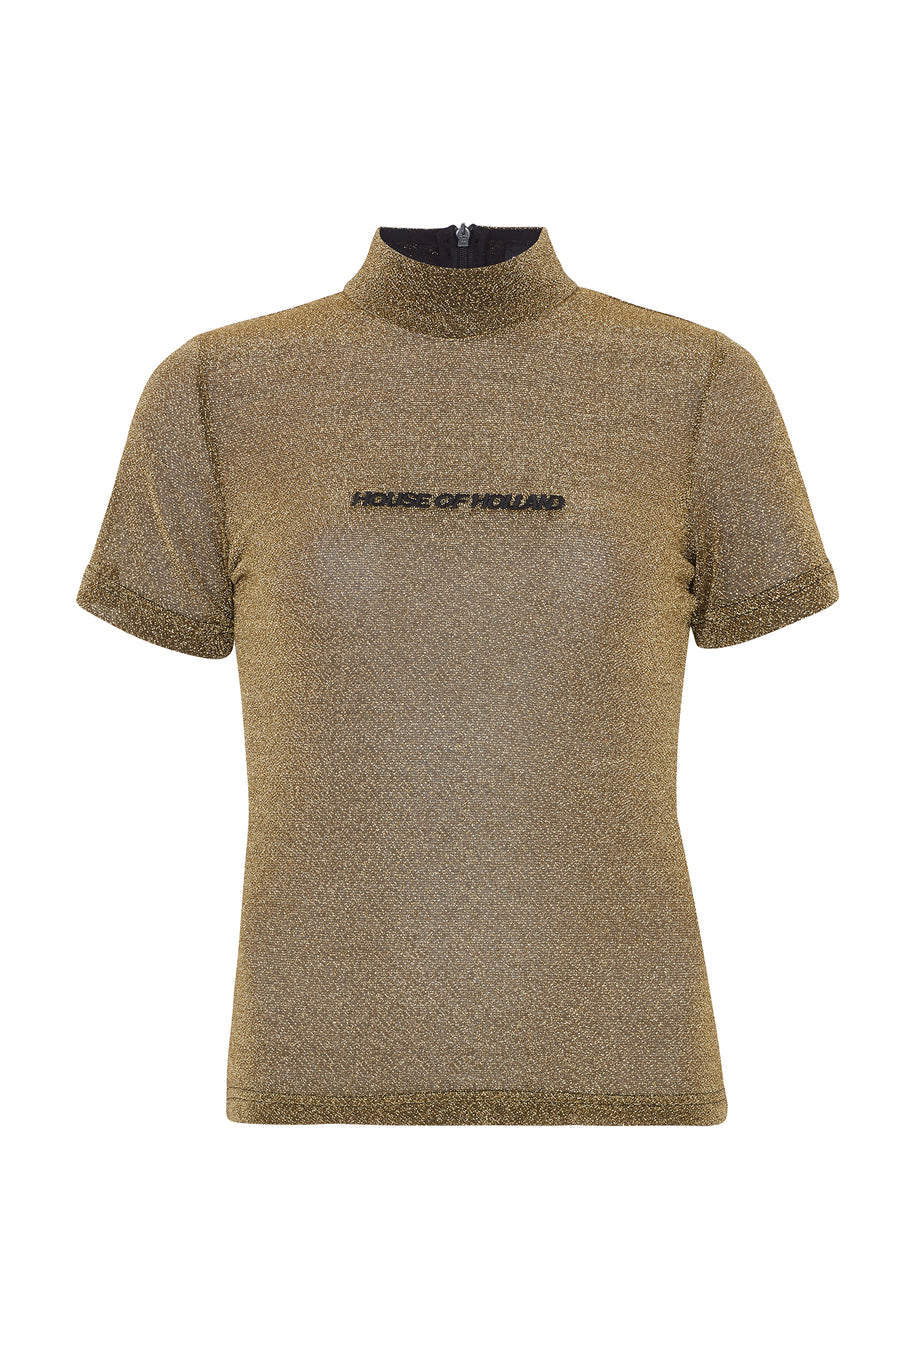 Gold Lurex Tee